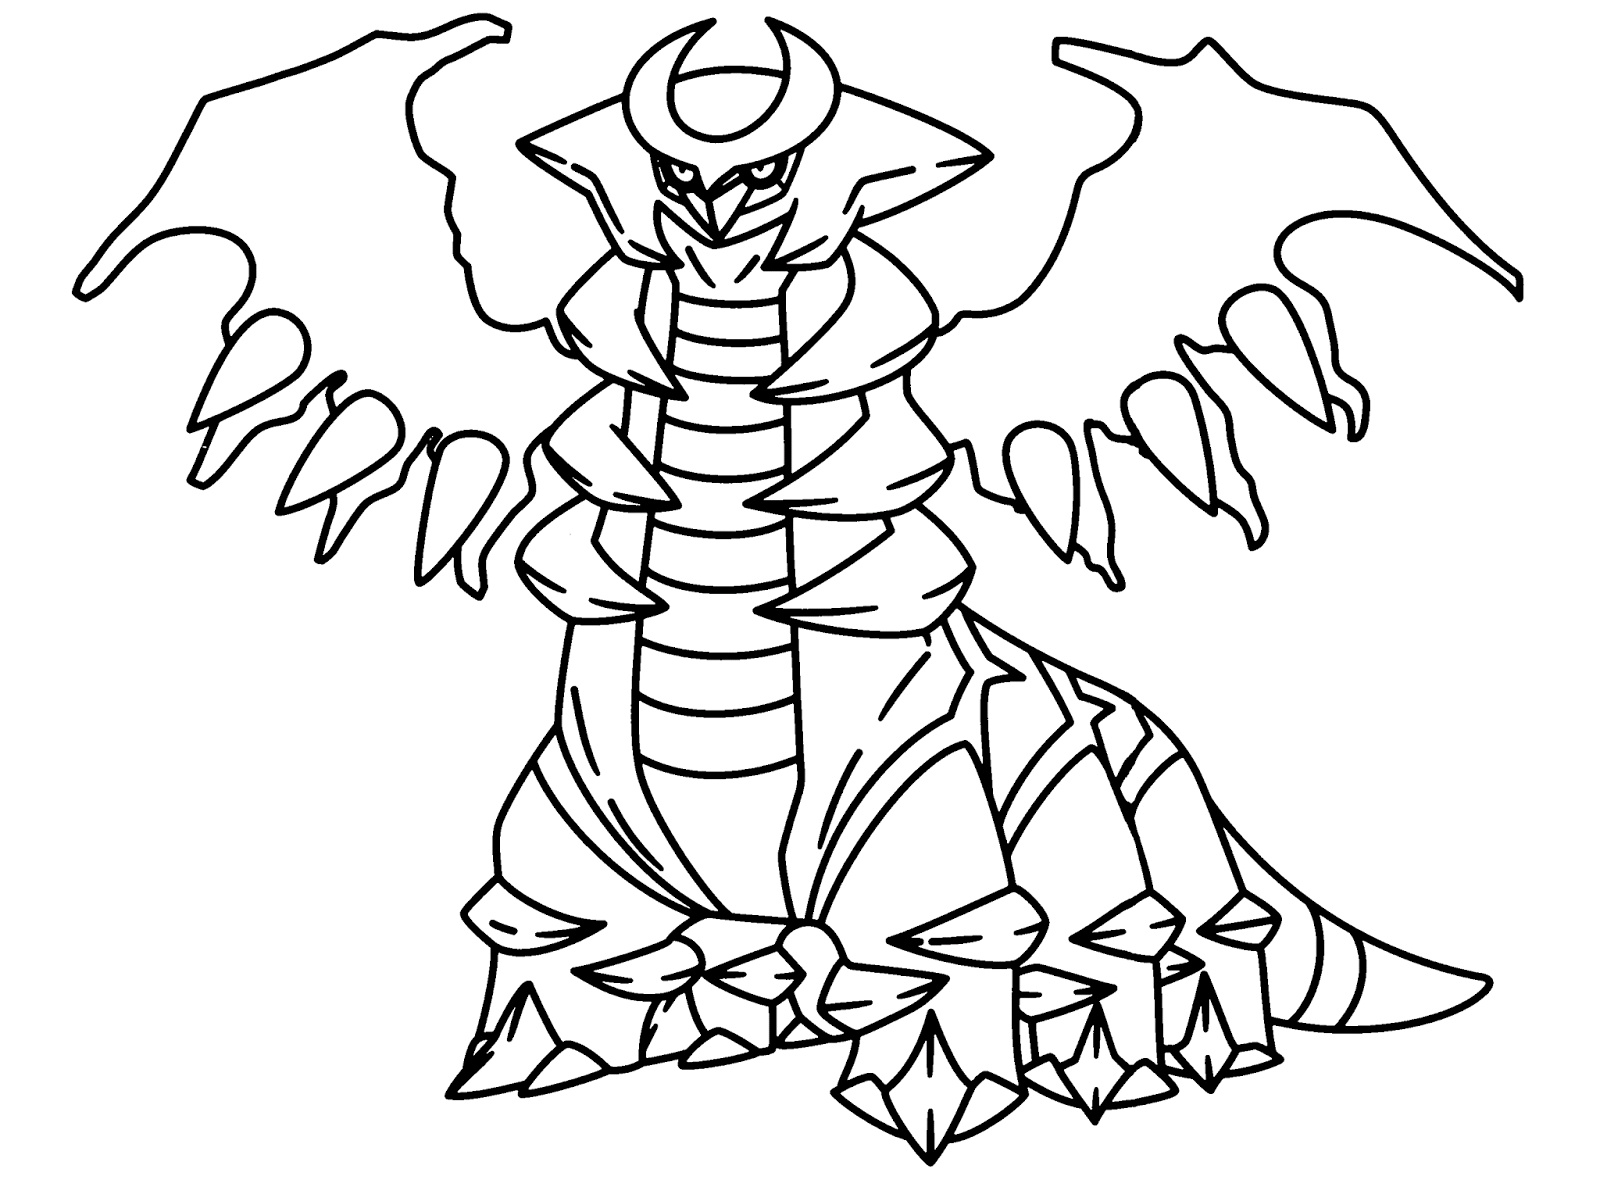 pictures of pokemon to color pokemon coloring pages join your favorite pokemon on an pictures of color to pokemon